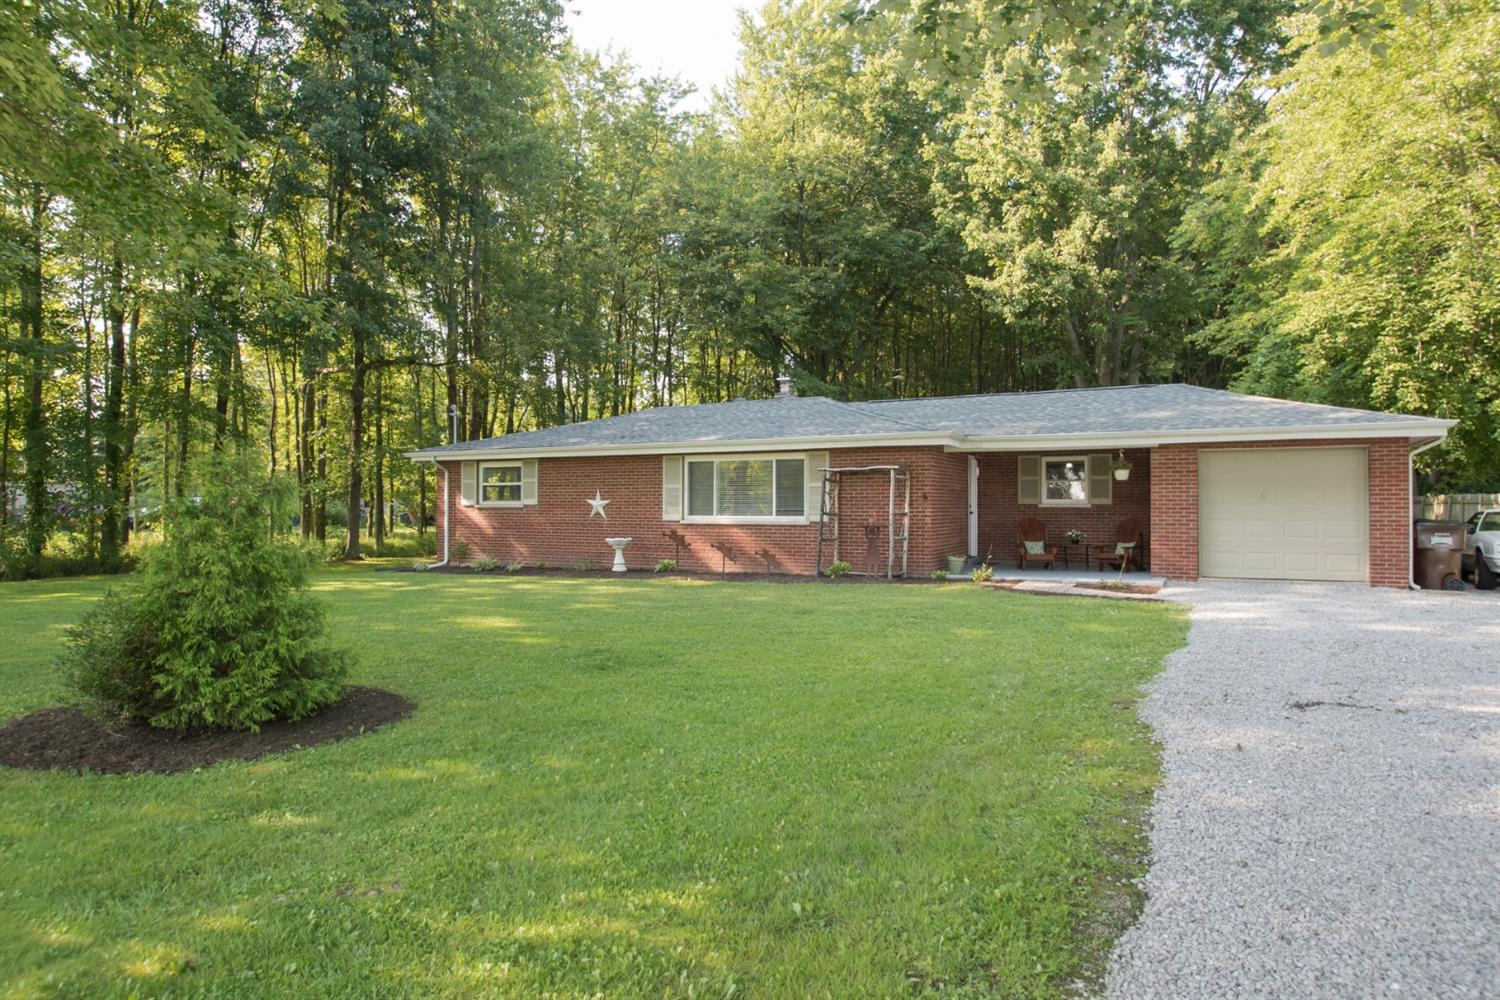 Property for sale at 3238 St Rt 131, Wayne Twp,  OH 45122